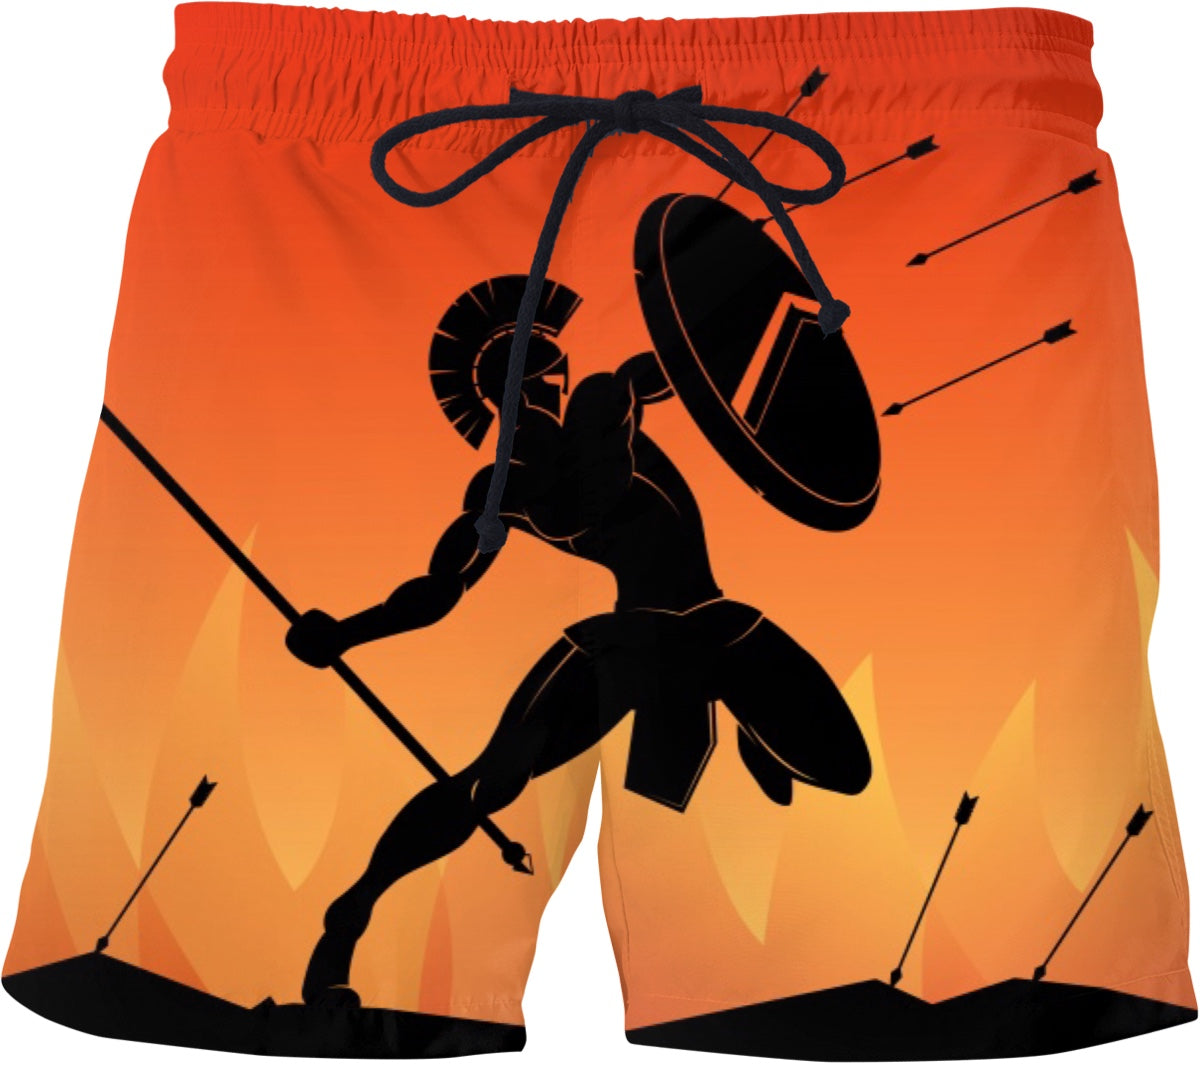 Spartan Swim Shorts